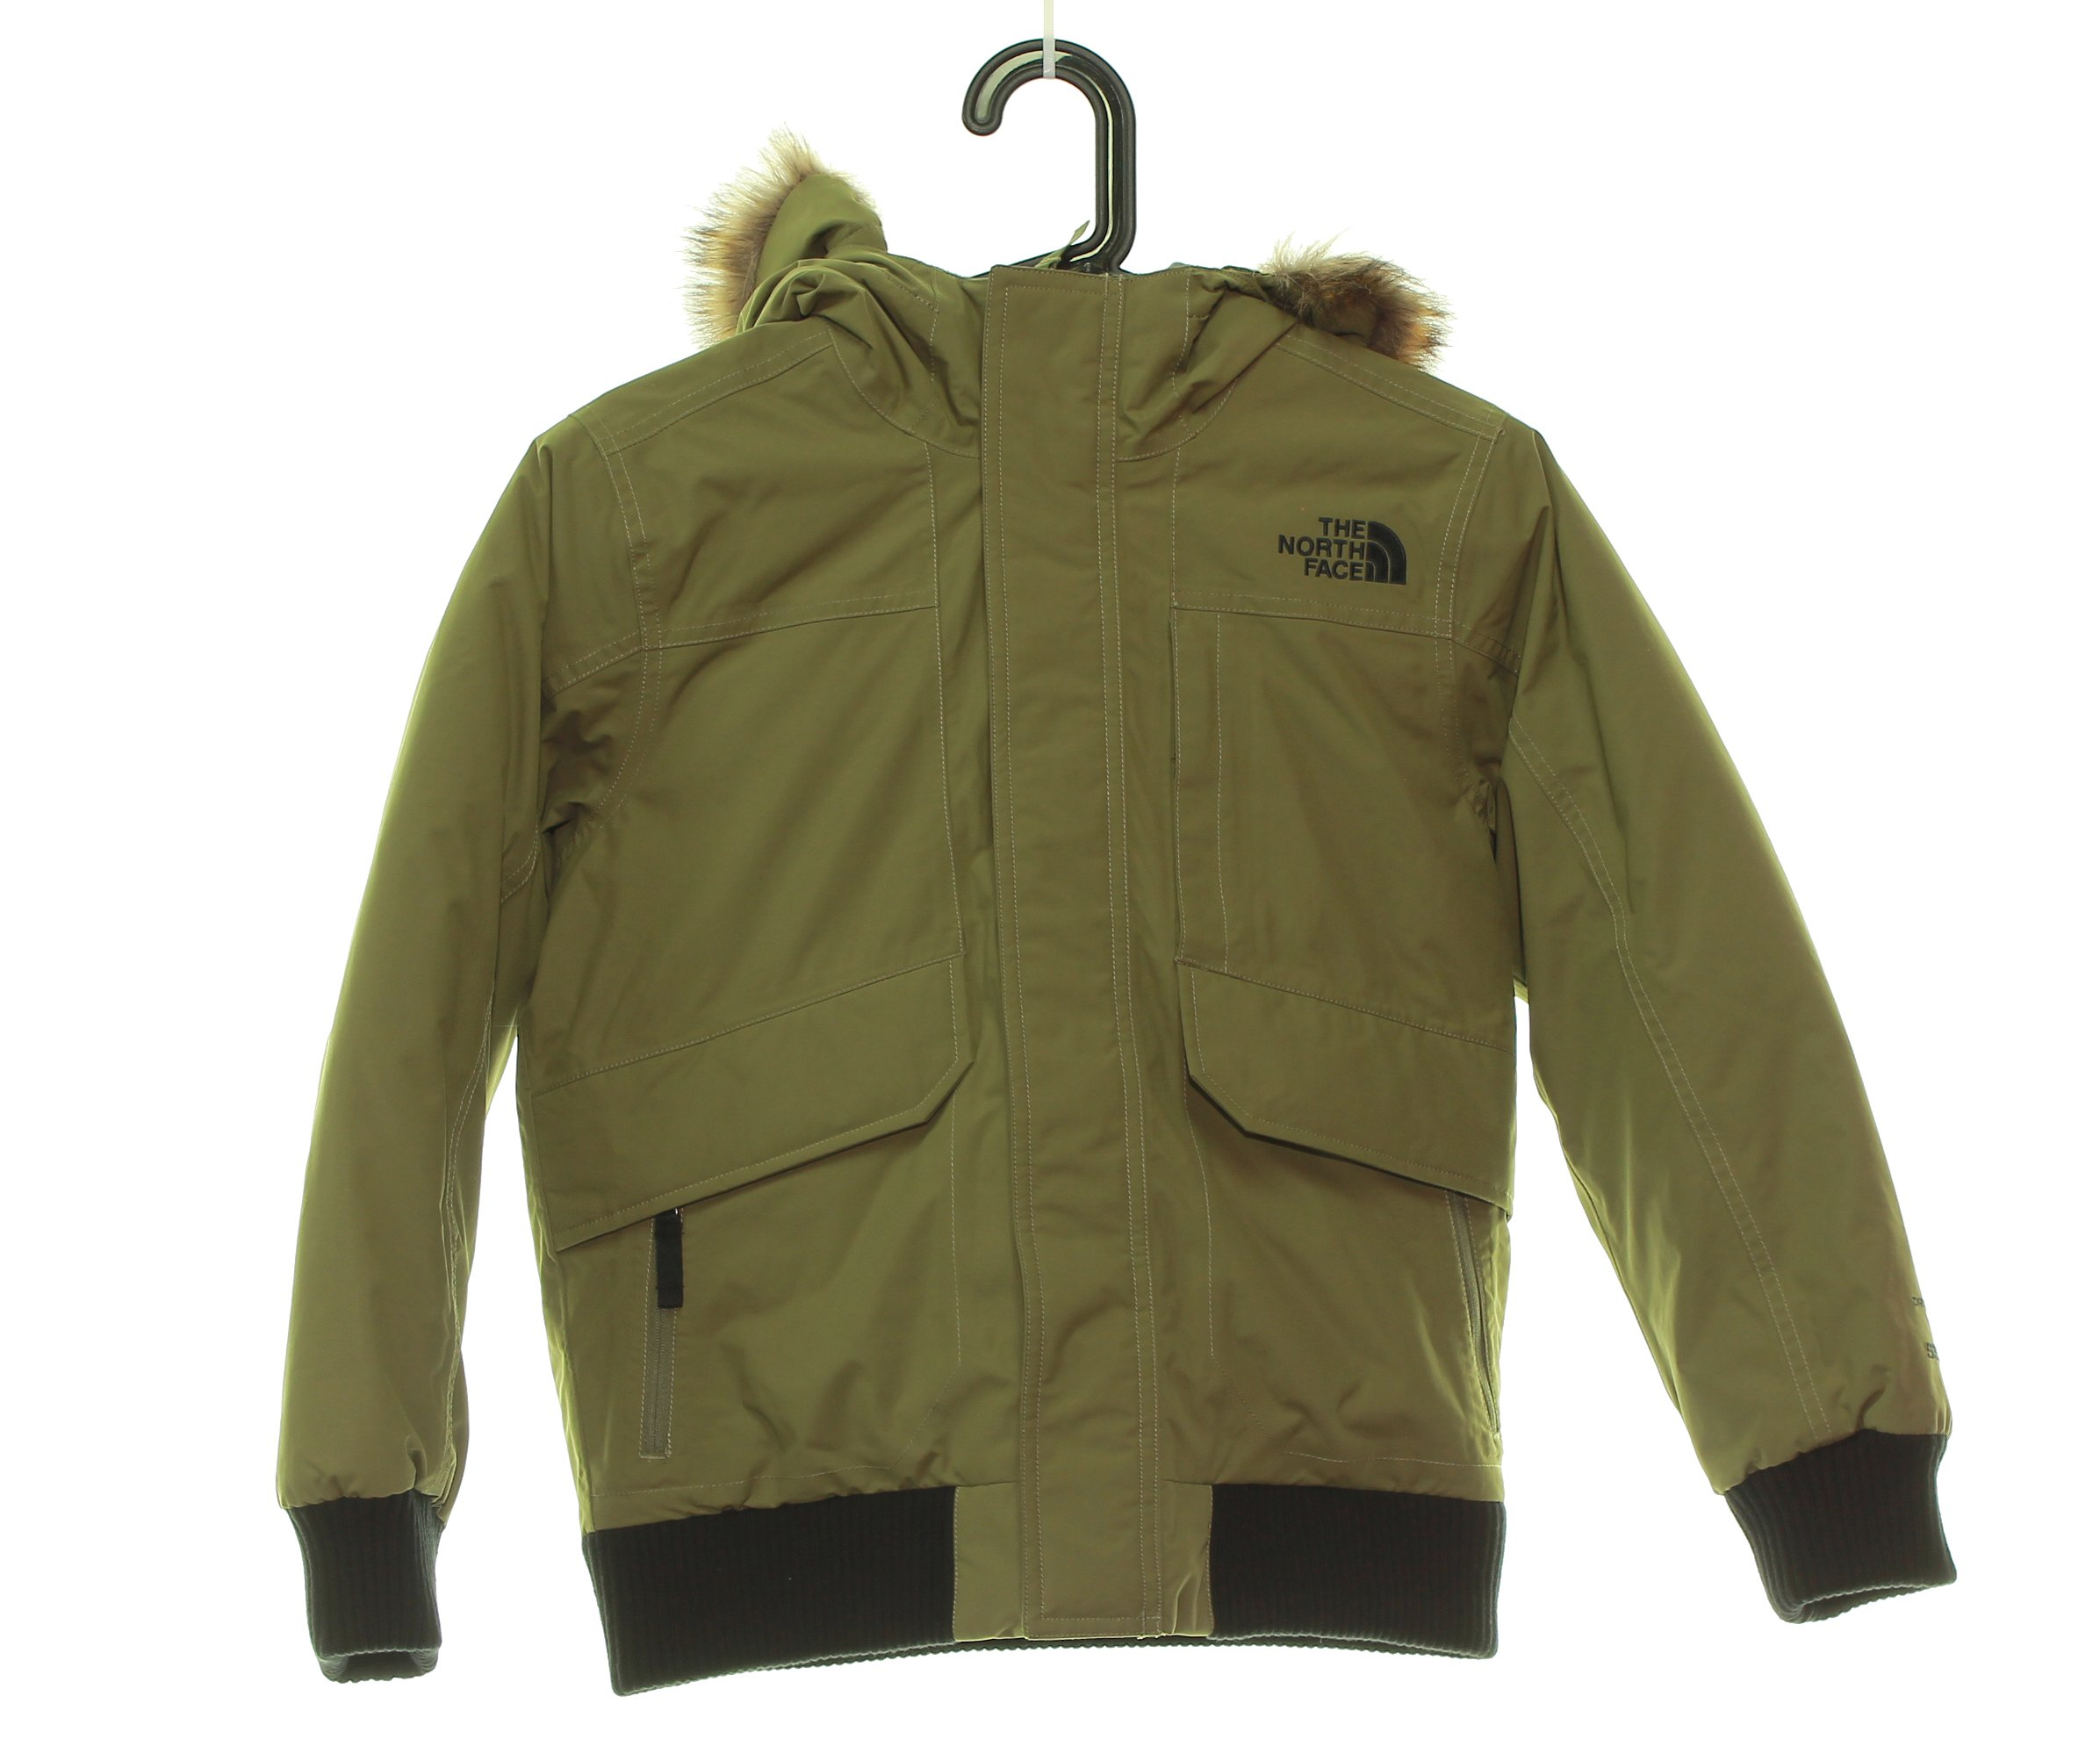 Boy's The North Face Gotham Down Jacket 10/12 Burnt Olive Green, Medium by No Warranty The North Face